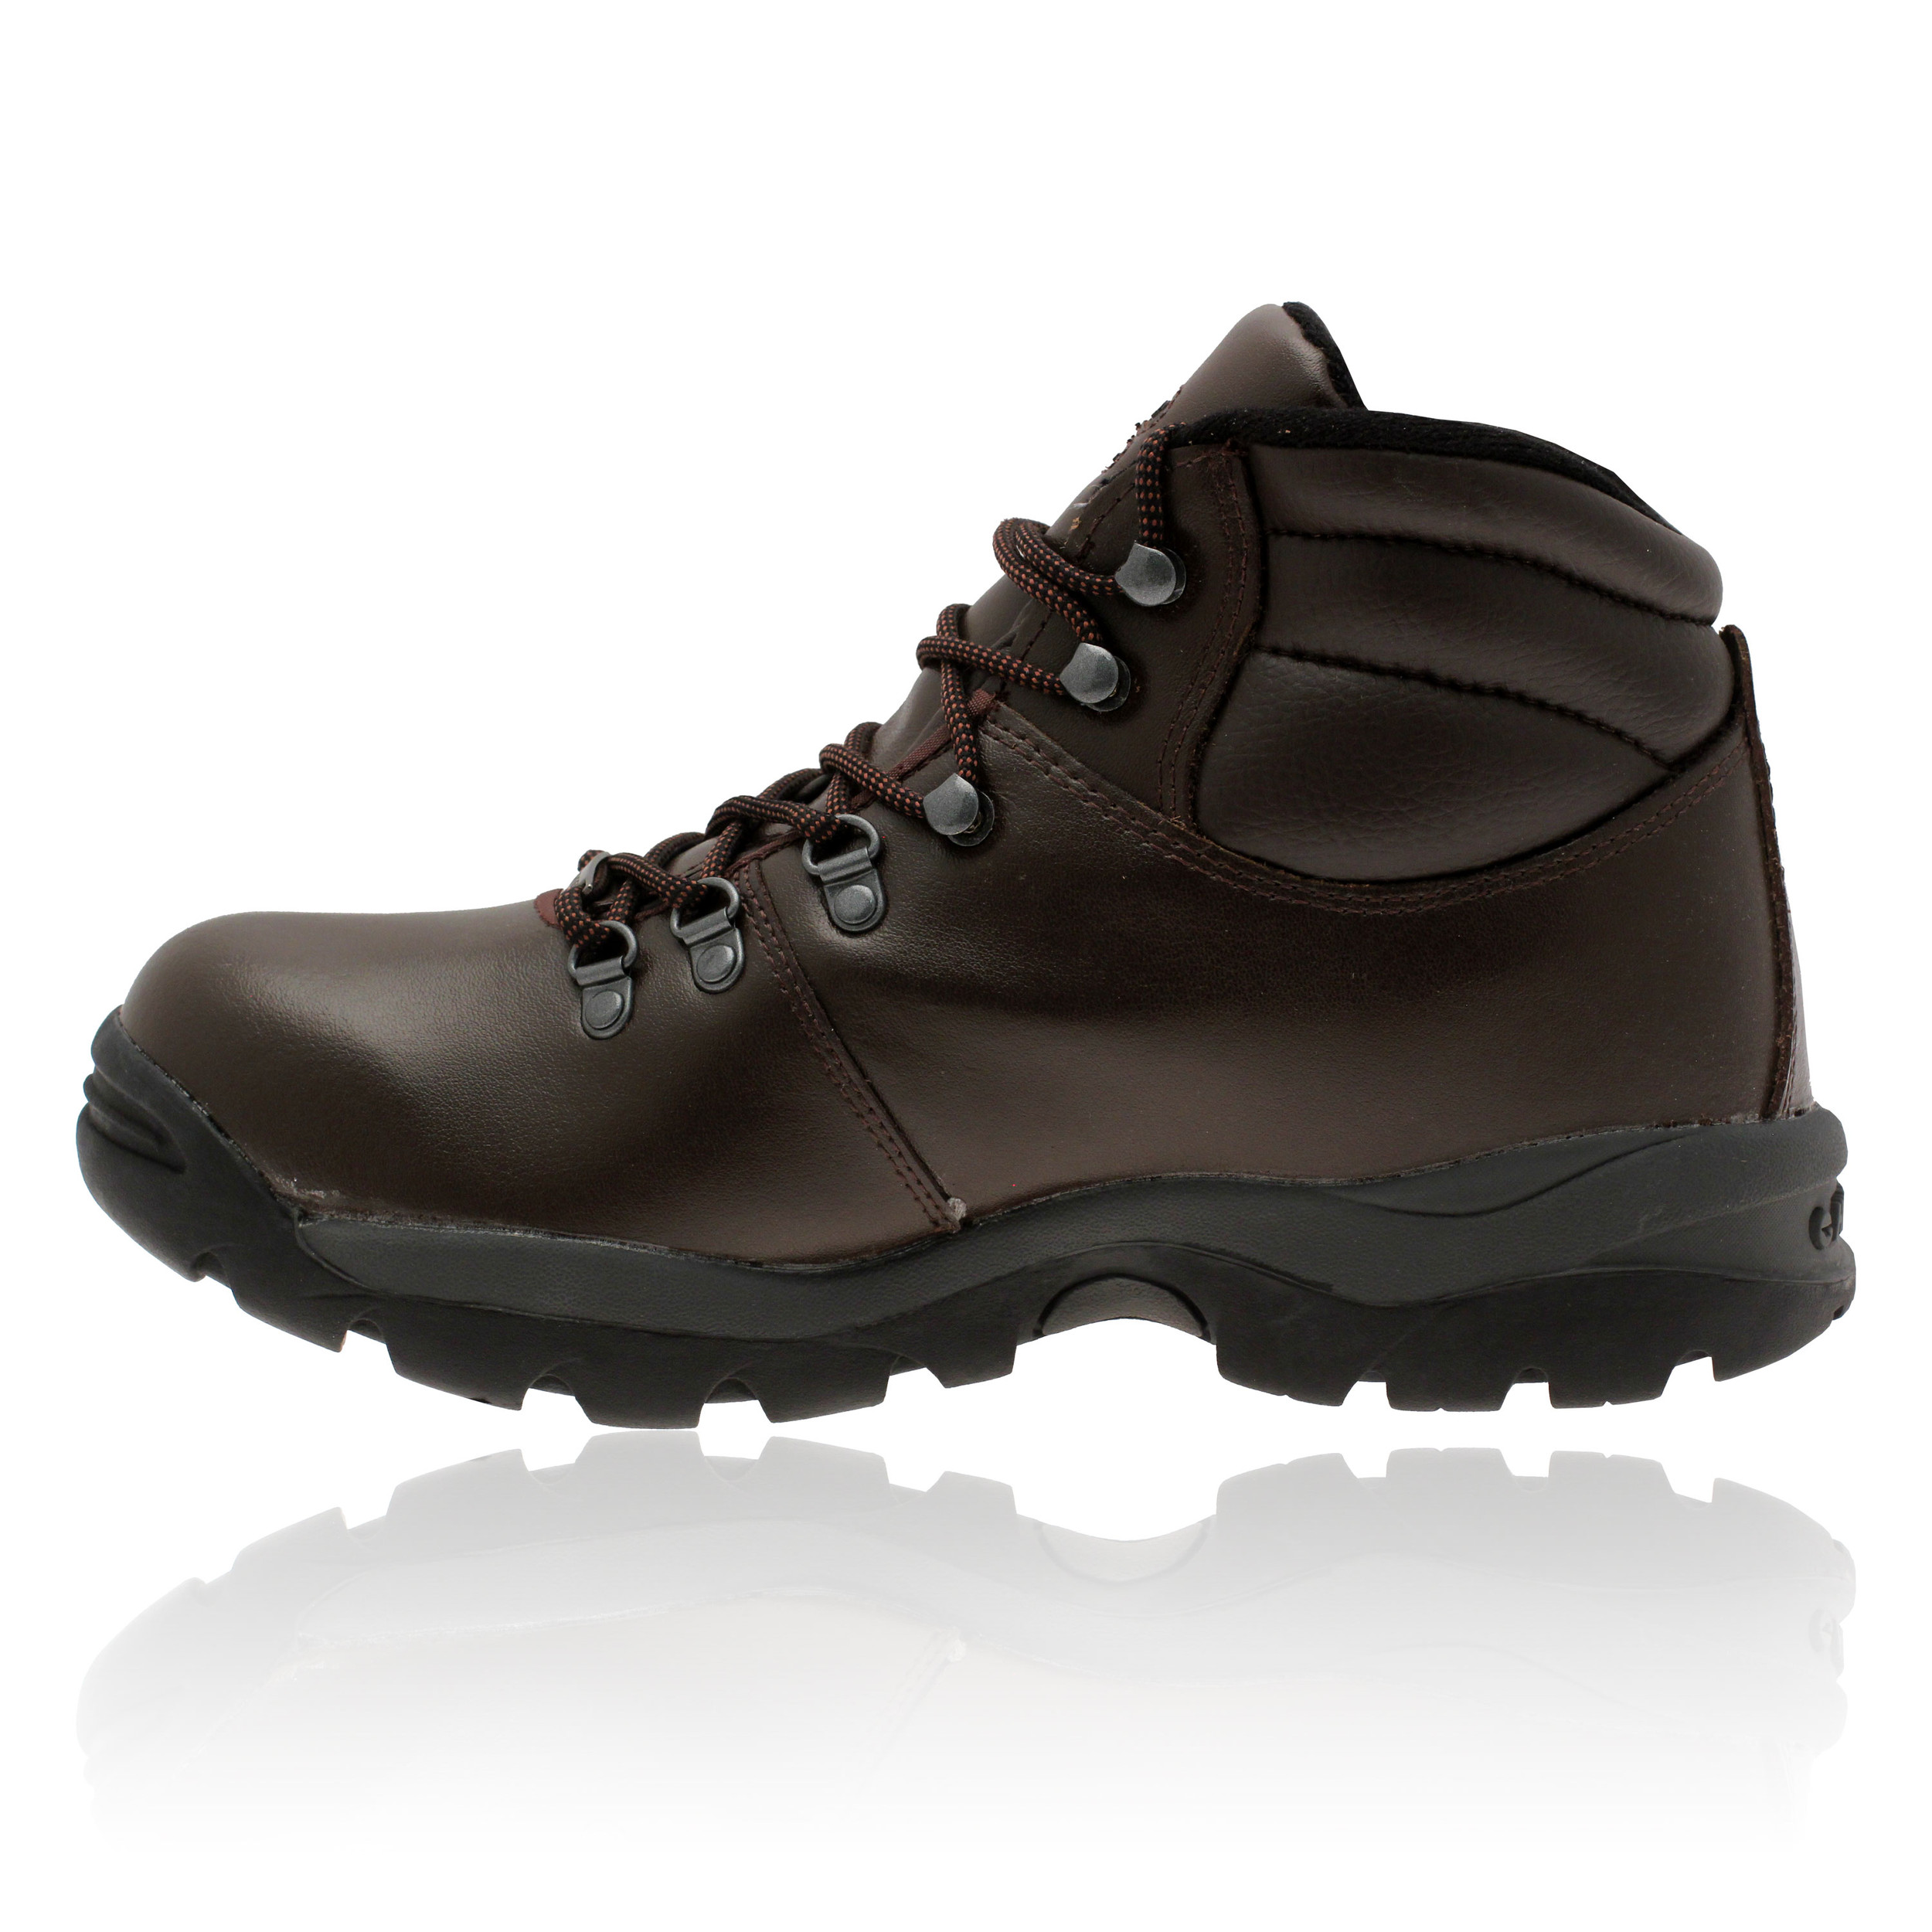 hi tec womens brown waterproof eurotrek walking hiking